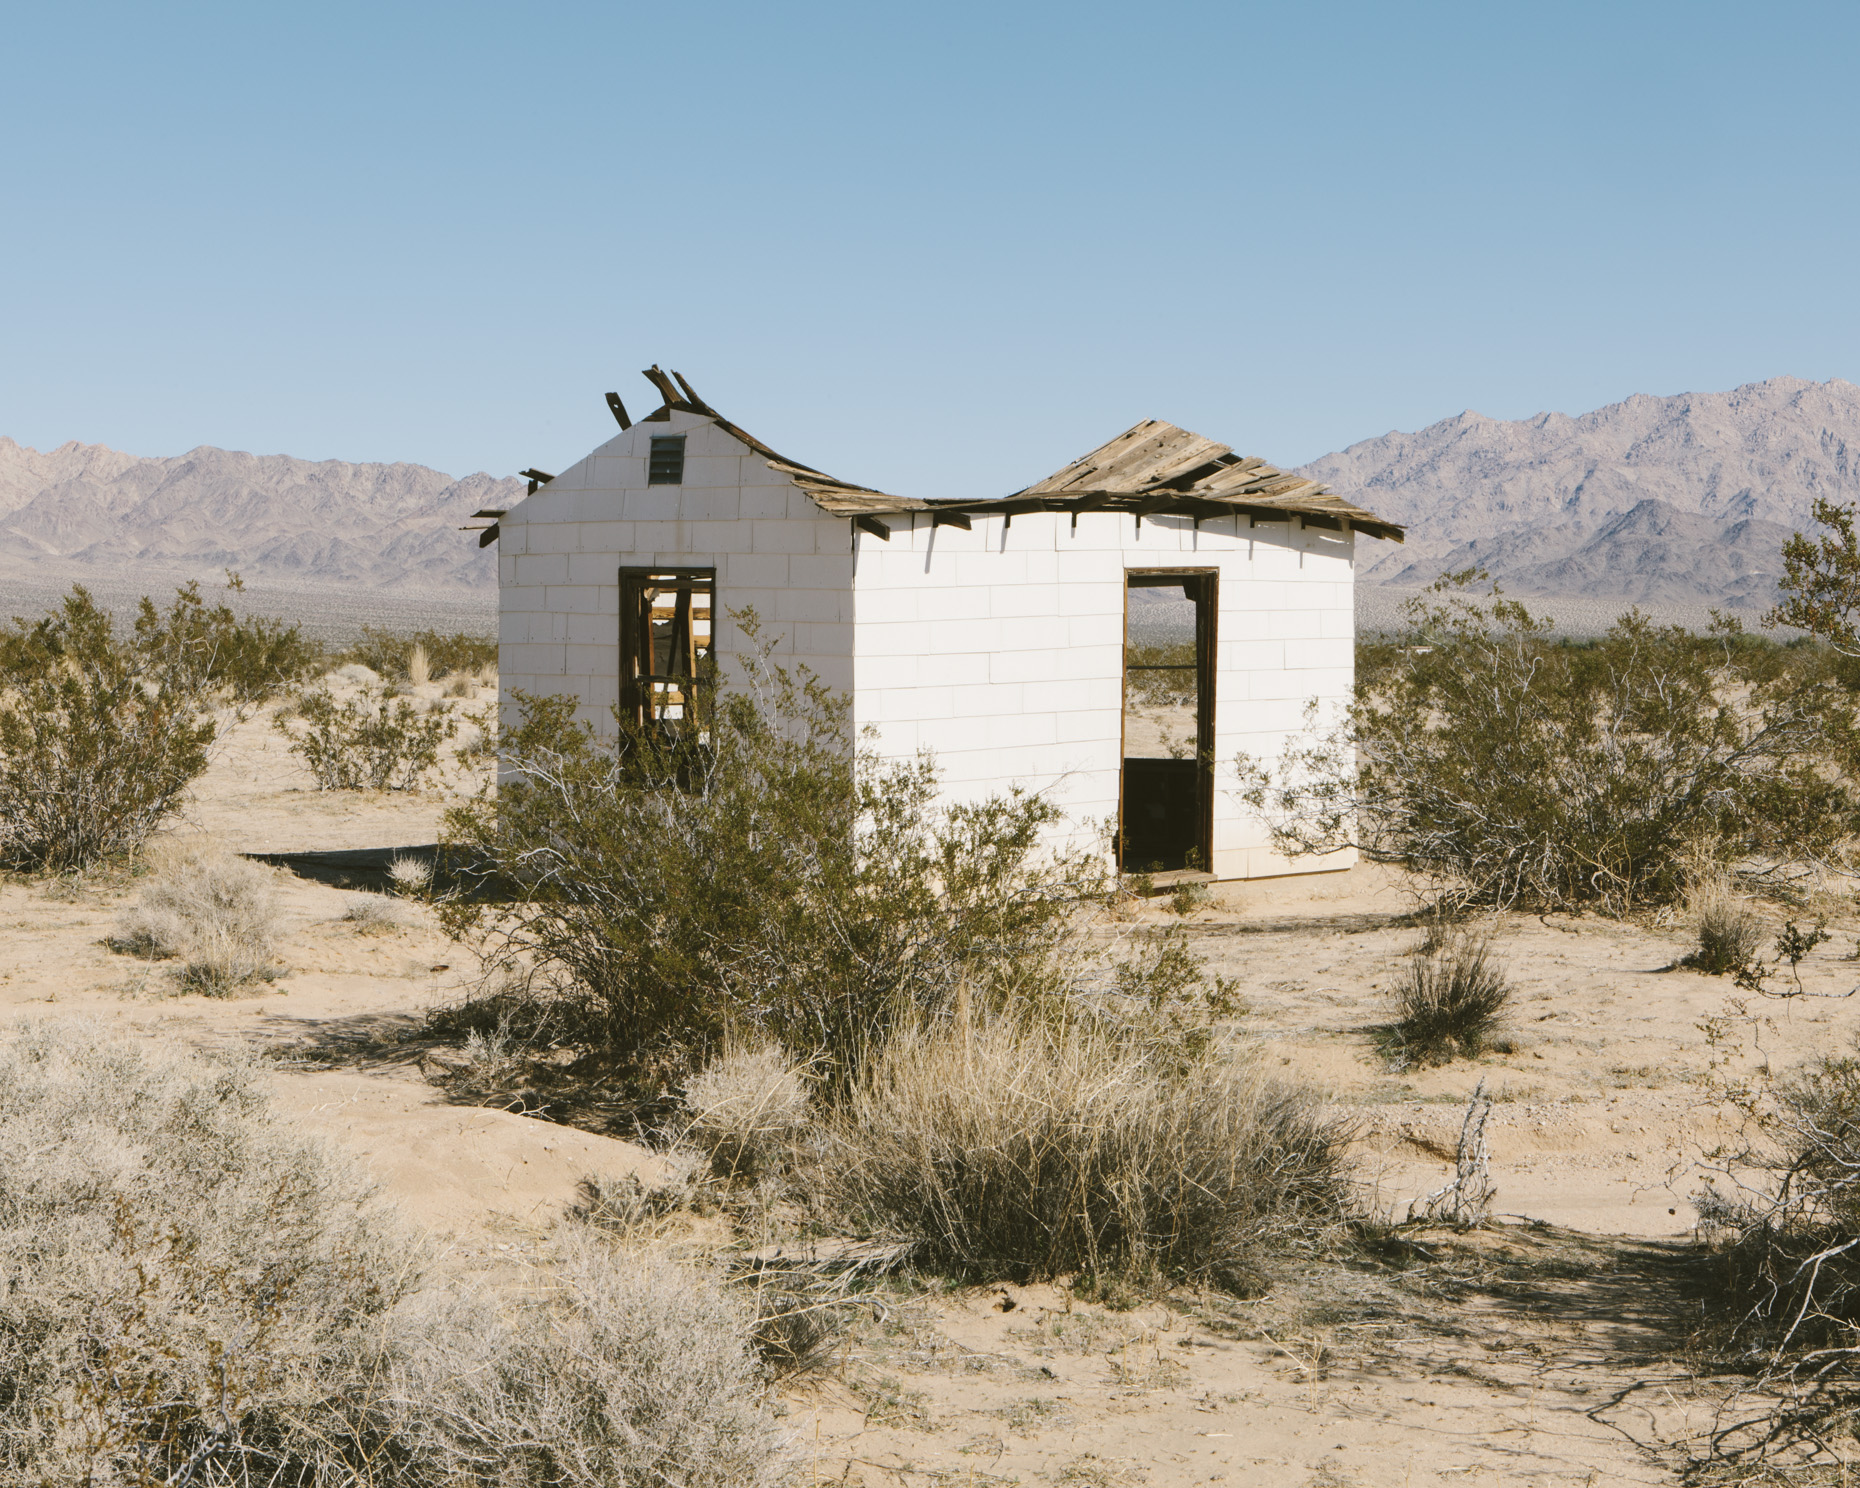 Abandoned home in desert, Twentynine Palms, CA - Paul Edmondson